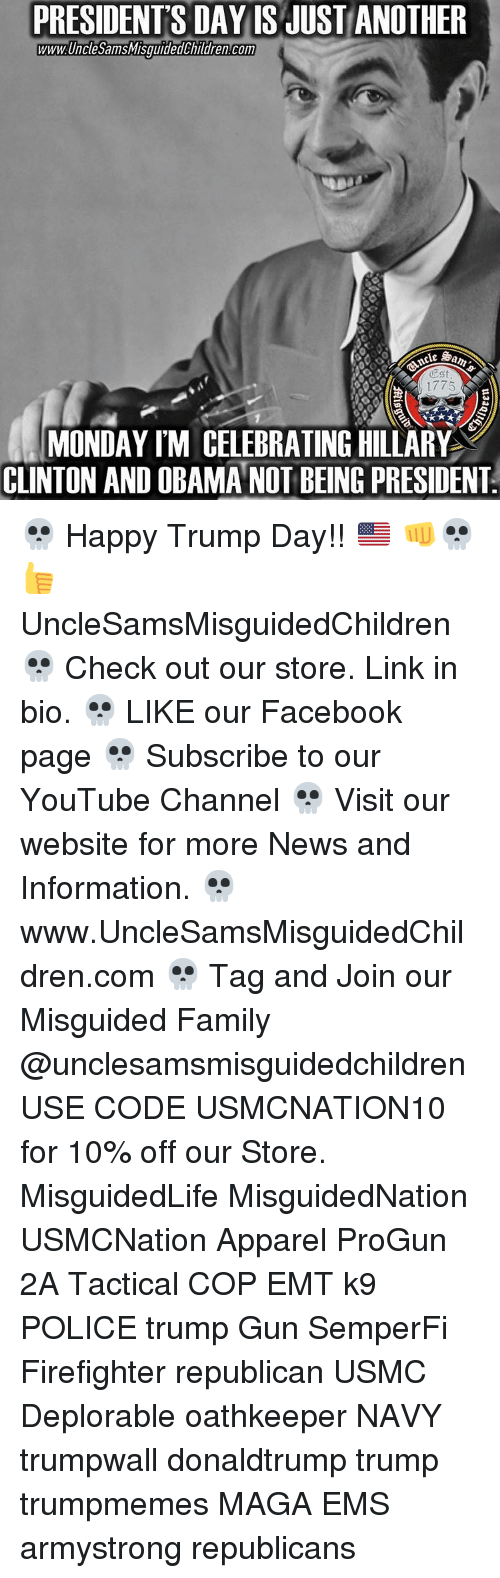 Facebook, Family, and Hillary Clinton: PRESIDENTS DAY IS JUST ANOTHER  WWWUncleSamsMisguidedChildrencom  1775  MONDAY IM CELEBRATING HILLARY  CLINTON AND OBAMA NOT BEING PRESIDENT 💀 Happy Trump Day!! 🇺🇸 👊💀👍 UncleSamsMisguidedChildren 💀 Check out our store. Link in bio. 💀 LIKE our Facebook page 💀 Subscribe to our YouTube Channel 💀 Visit our website for more News and Information. 💀 www.UncleSamsMisguidedChildren.com 💀 Tag and Join our Misguided Family @unclesamsmisguidedchildren USE CODE USMCNATION10 for 10% off our Store. MisguidedLife MisguidedNation USMCNation Apparel ProGun 2A Tactical COP EMT k9 POLICE trump Gun SemperFi Firefighter republican USMC Deplorable oathkeeper NAVY trumpwall donaldtrump trump trumpmemes MAGA EMS armystrong republicans